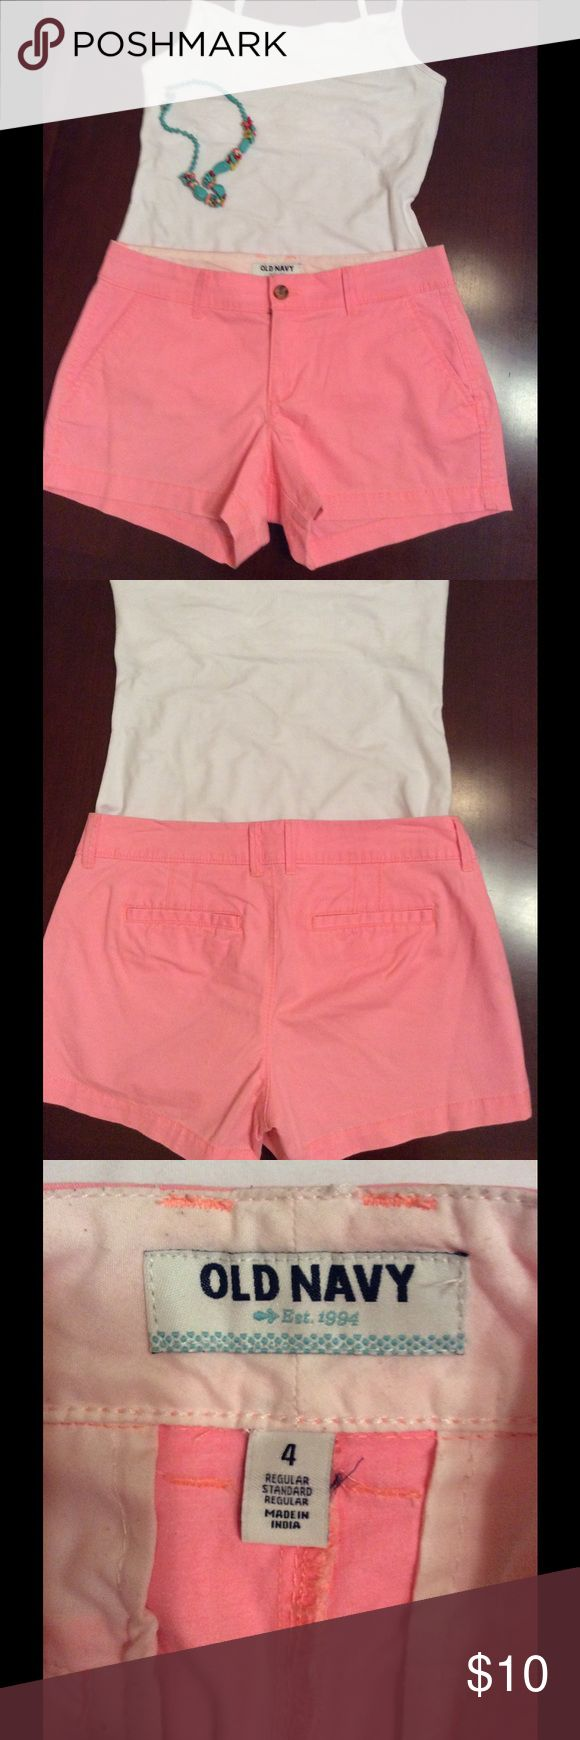 Old Navy Peach Shorts Nonsmoking home. 16 and 1/2 inch waistband when measured flat. 3 inch inseam.  Really cute! Old Navy Shorts Jean Shorts